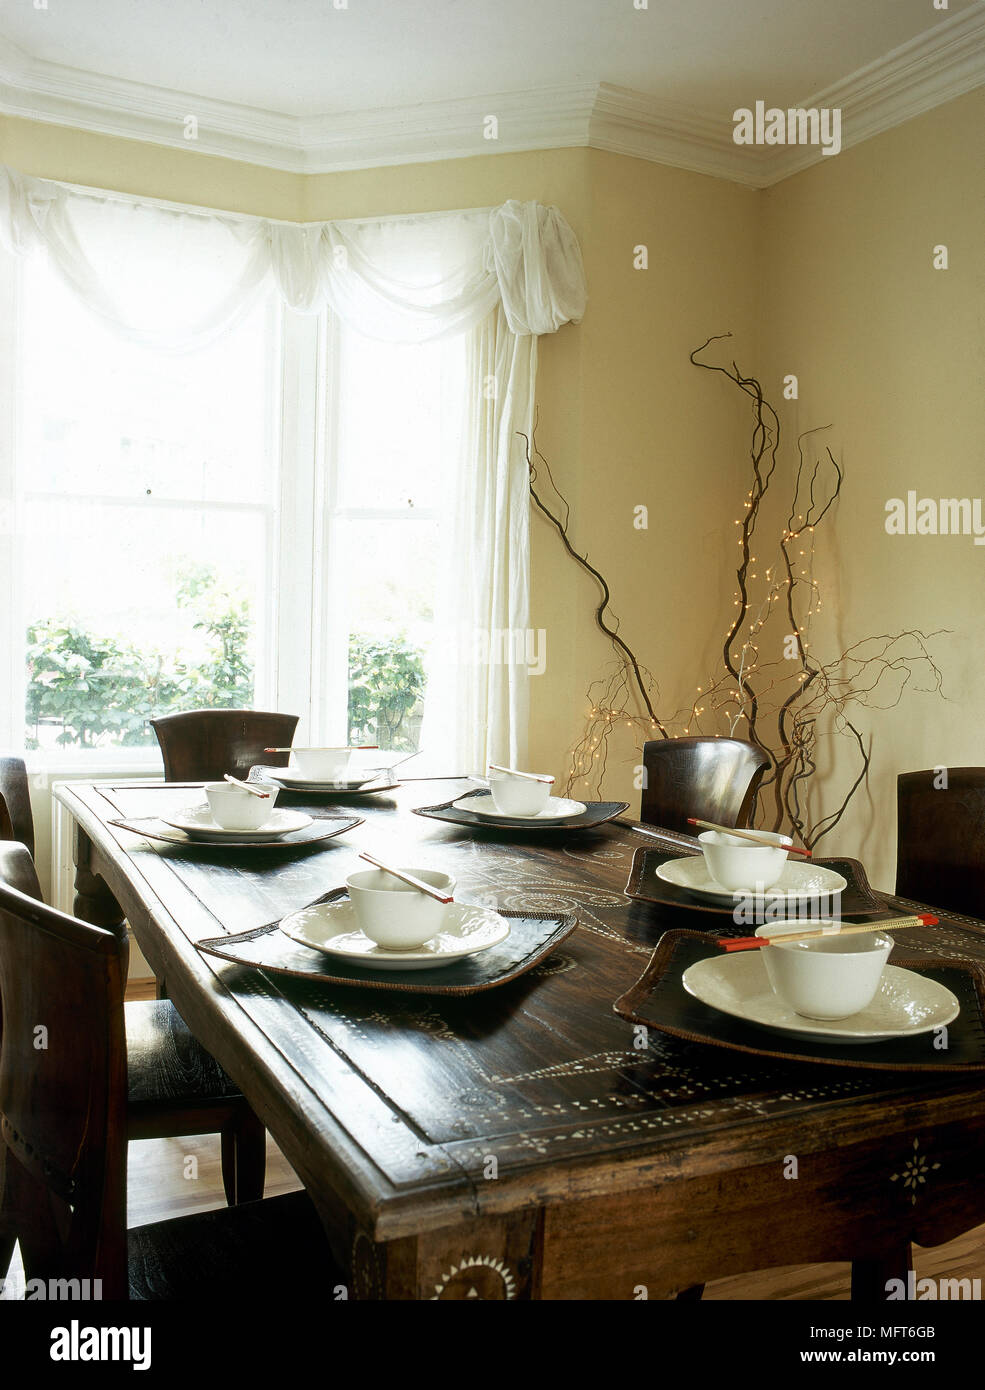 Modern, Country Dining Room With Inlaid Wooden Table And Chairs, Table  Settings, And Sheer Curtains Over A Bay Window.